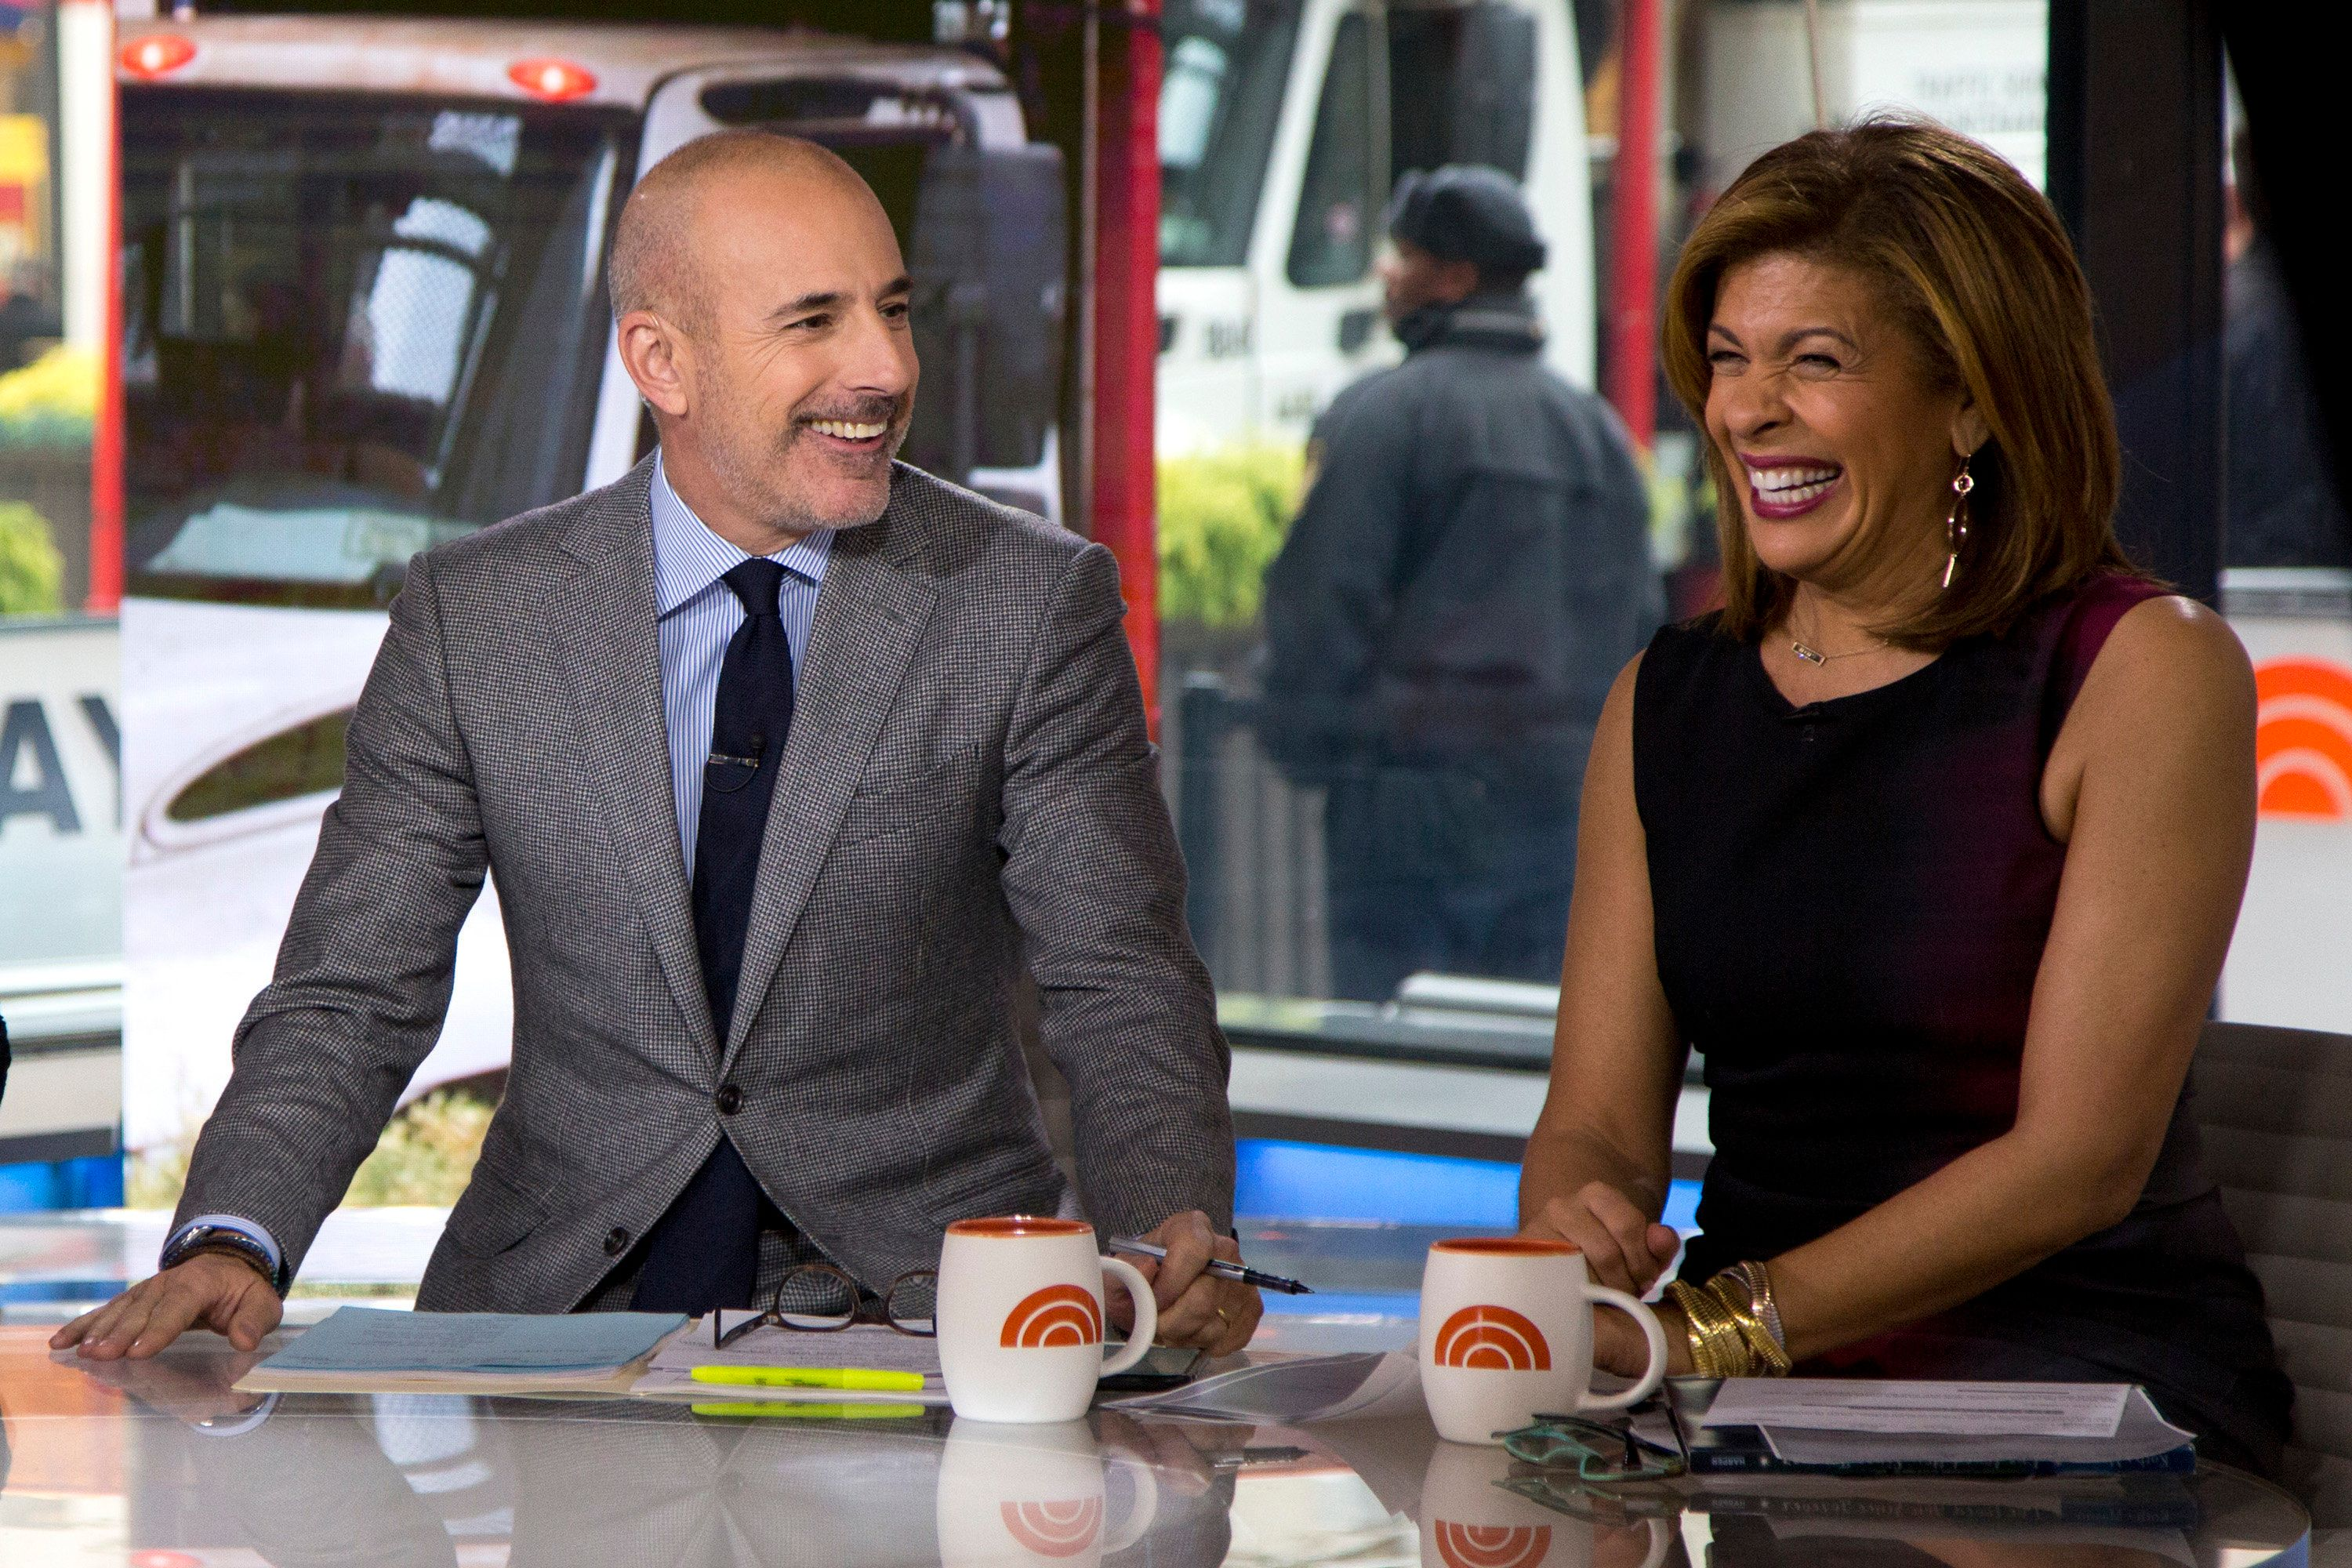 Hoda Kotb's 'sweet' Matt Lauer comment infuriates 'Today' fans